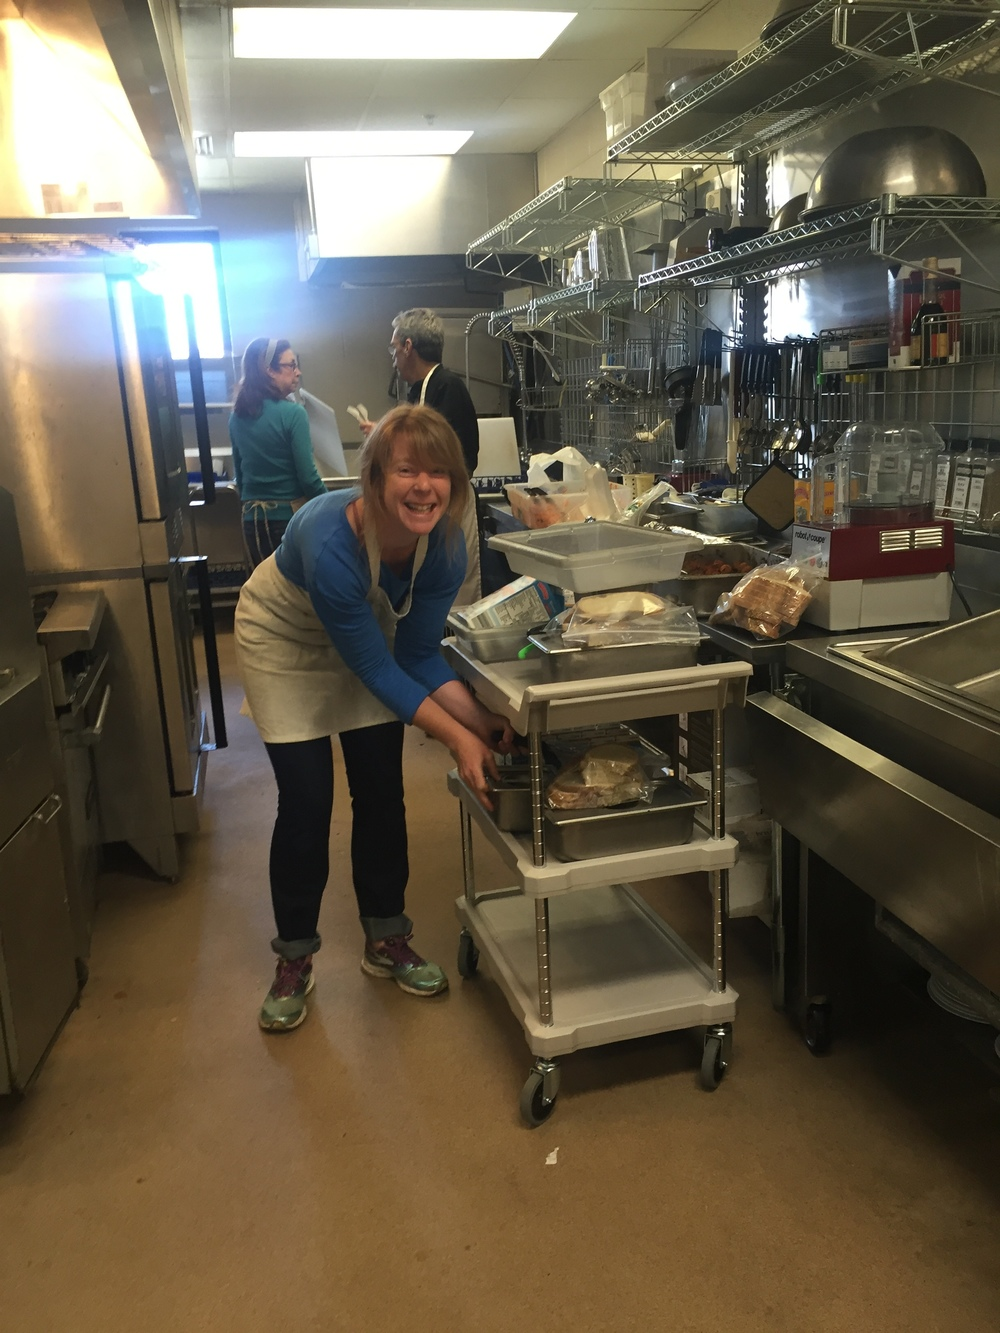 Here's Sarah loading up a cart to deliver meals to classrooms.